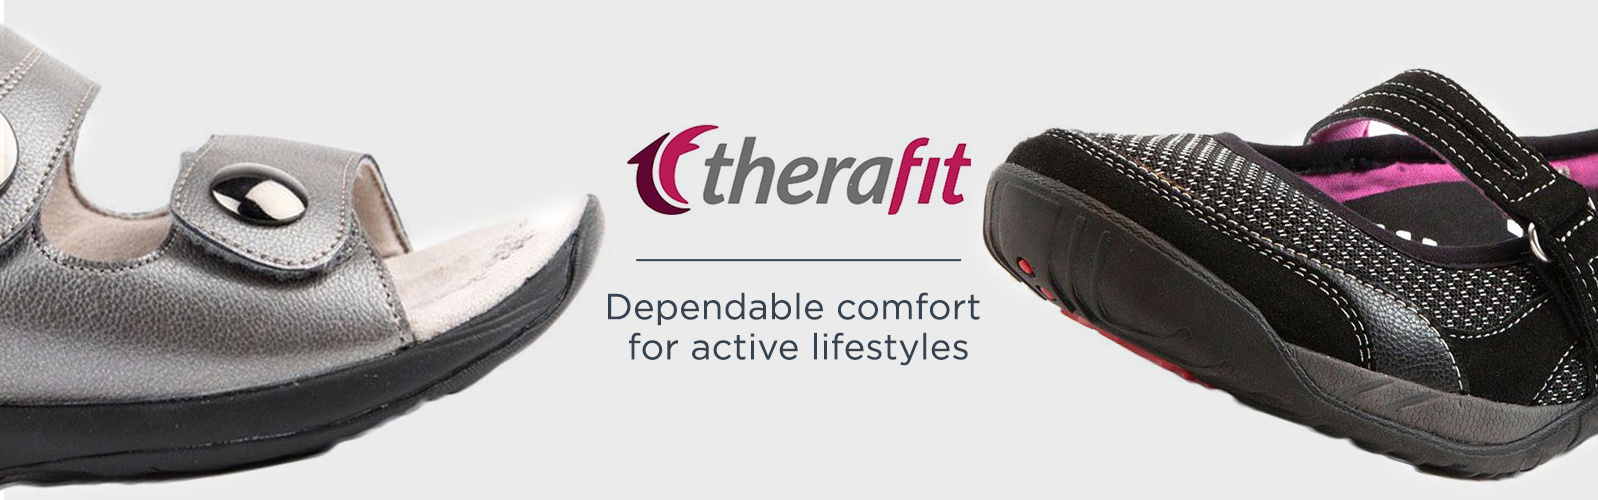 Therafit  — Dependable comfort for active lifestyles